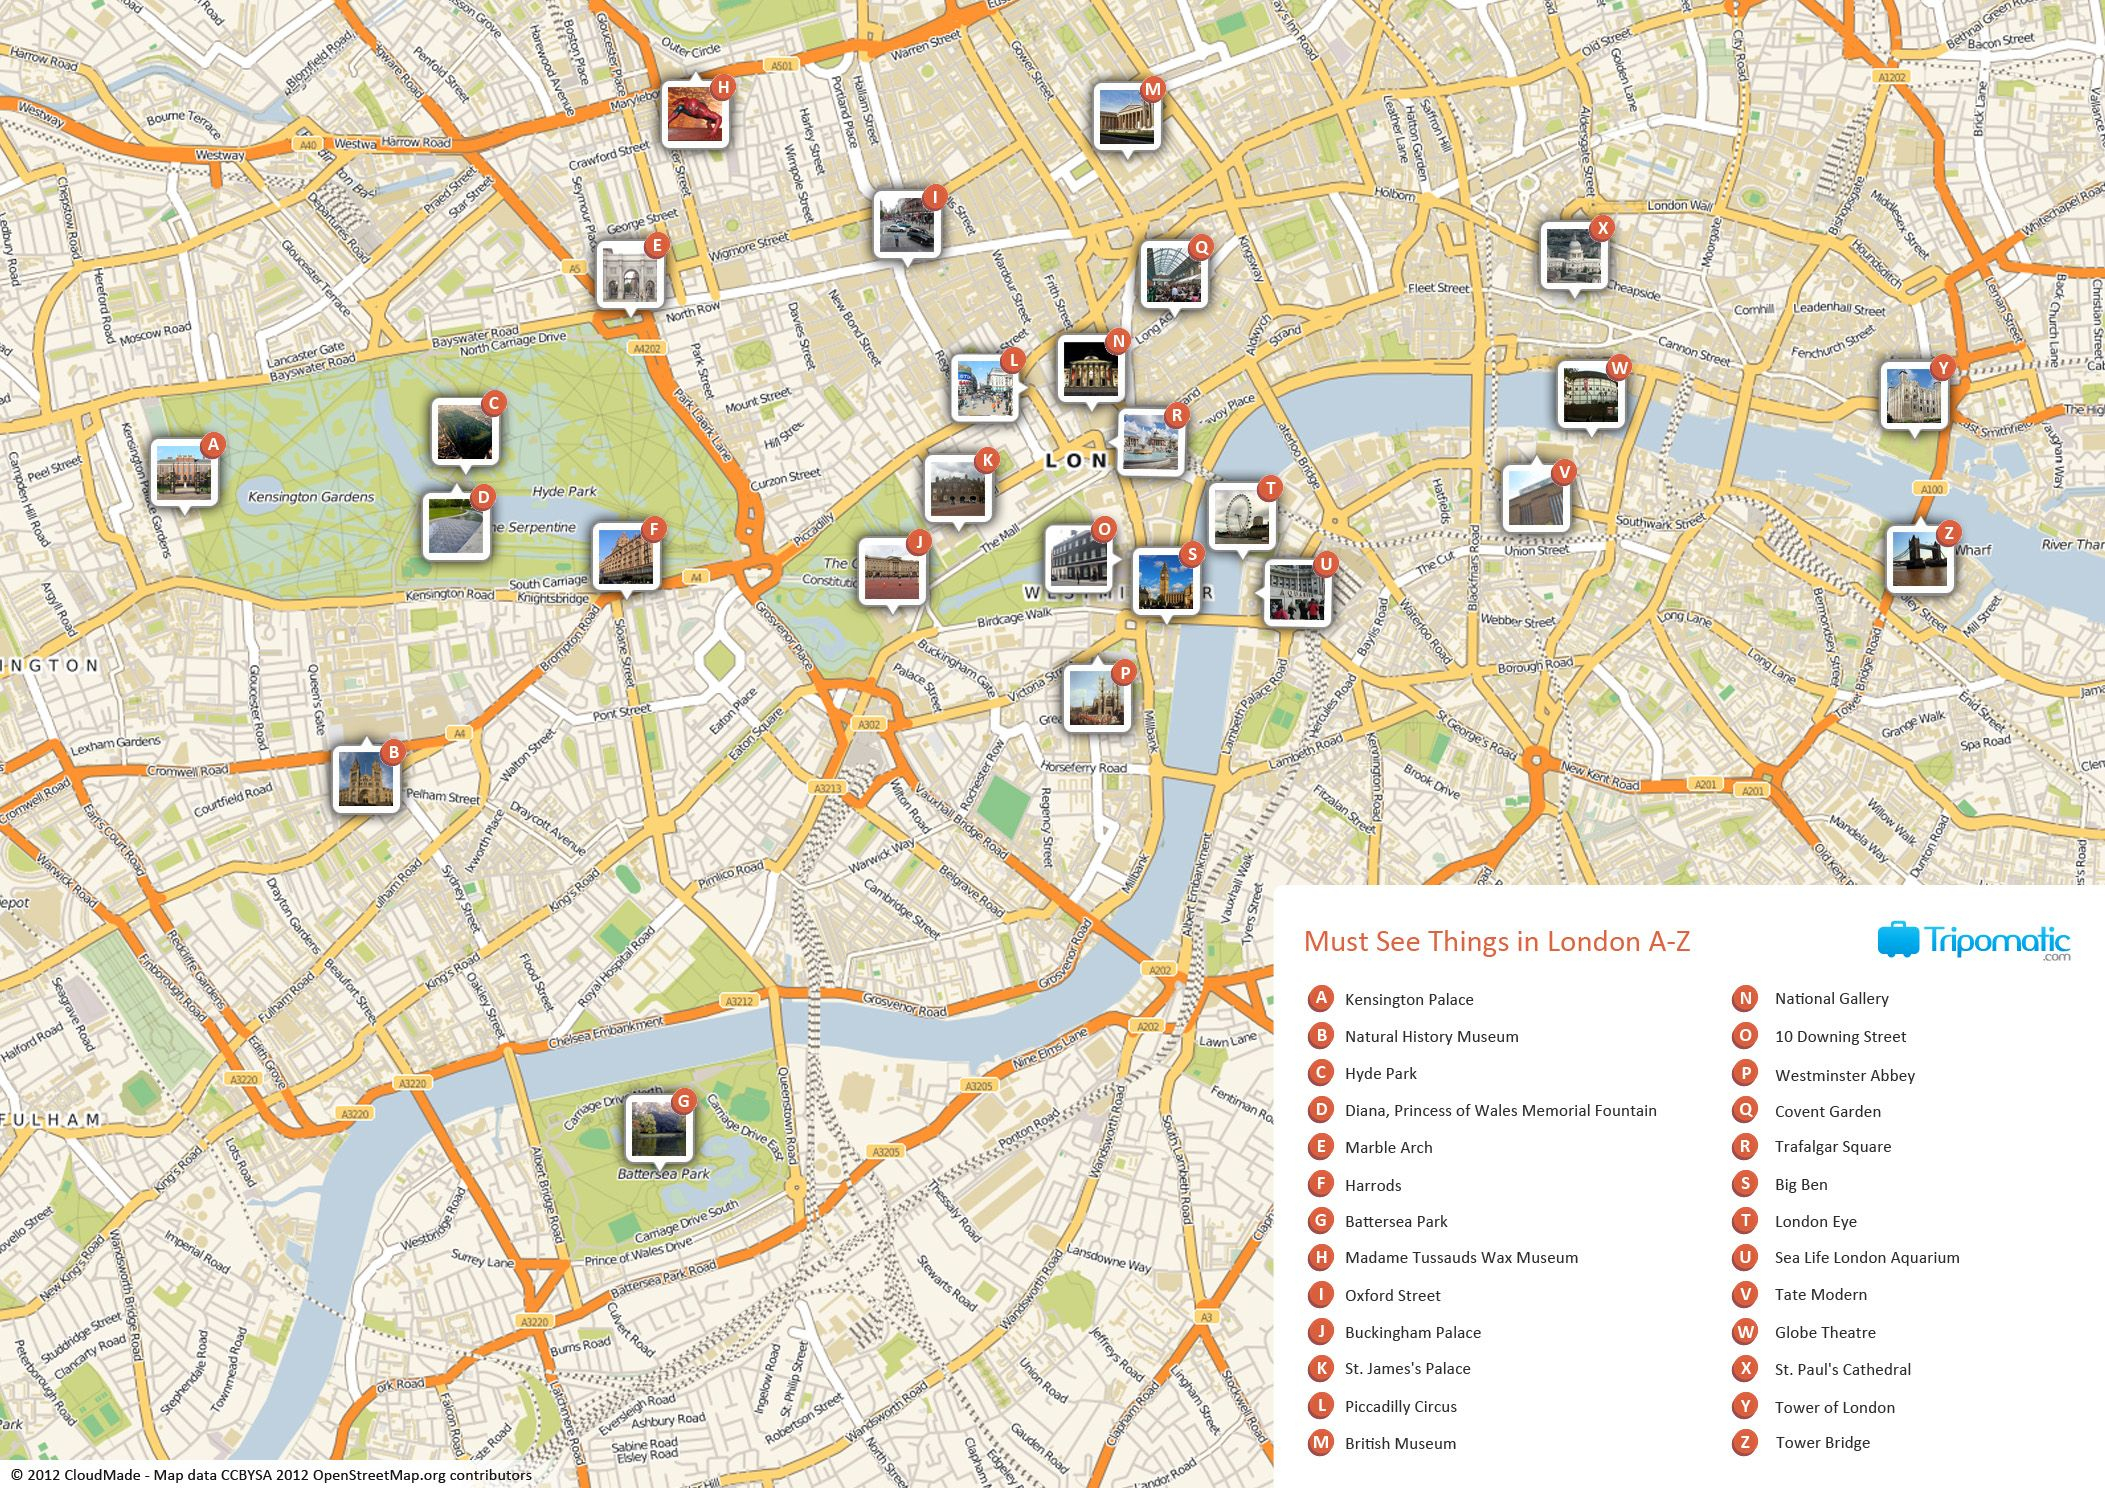 Map Of London With Must See Sights And Attractions. Free Printable - Printable Street Map Of London